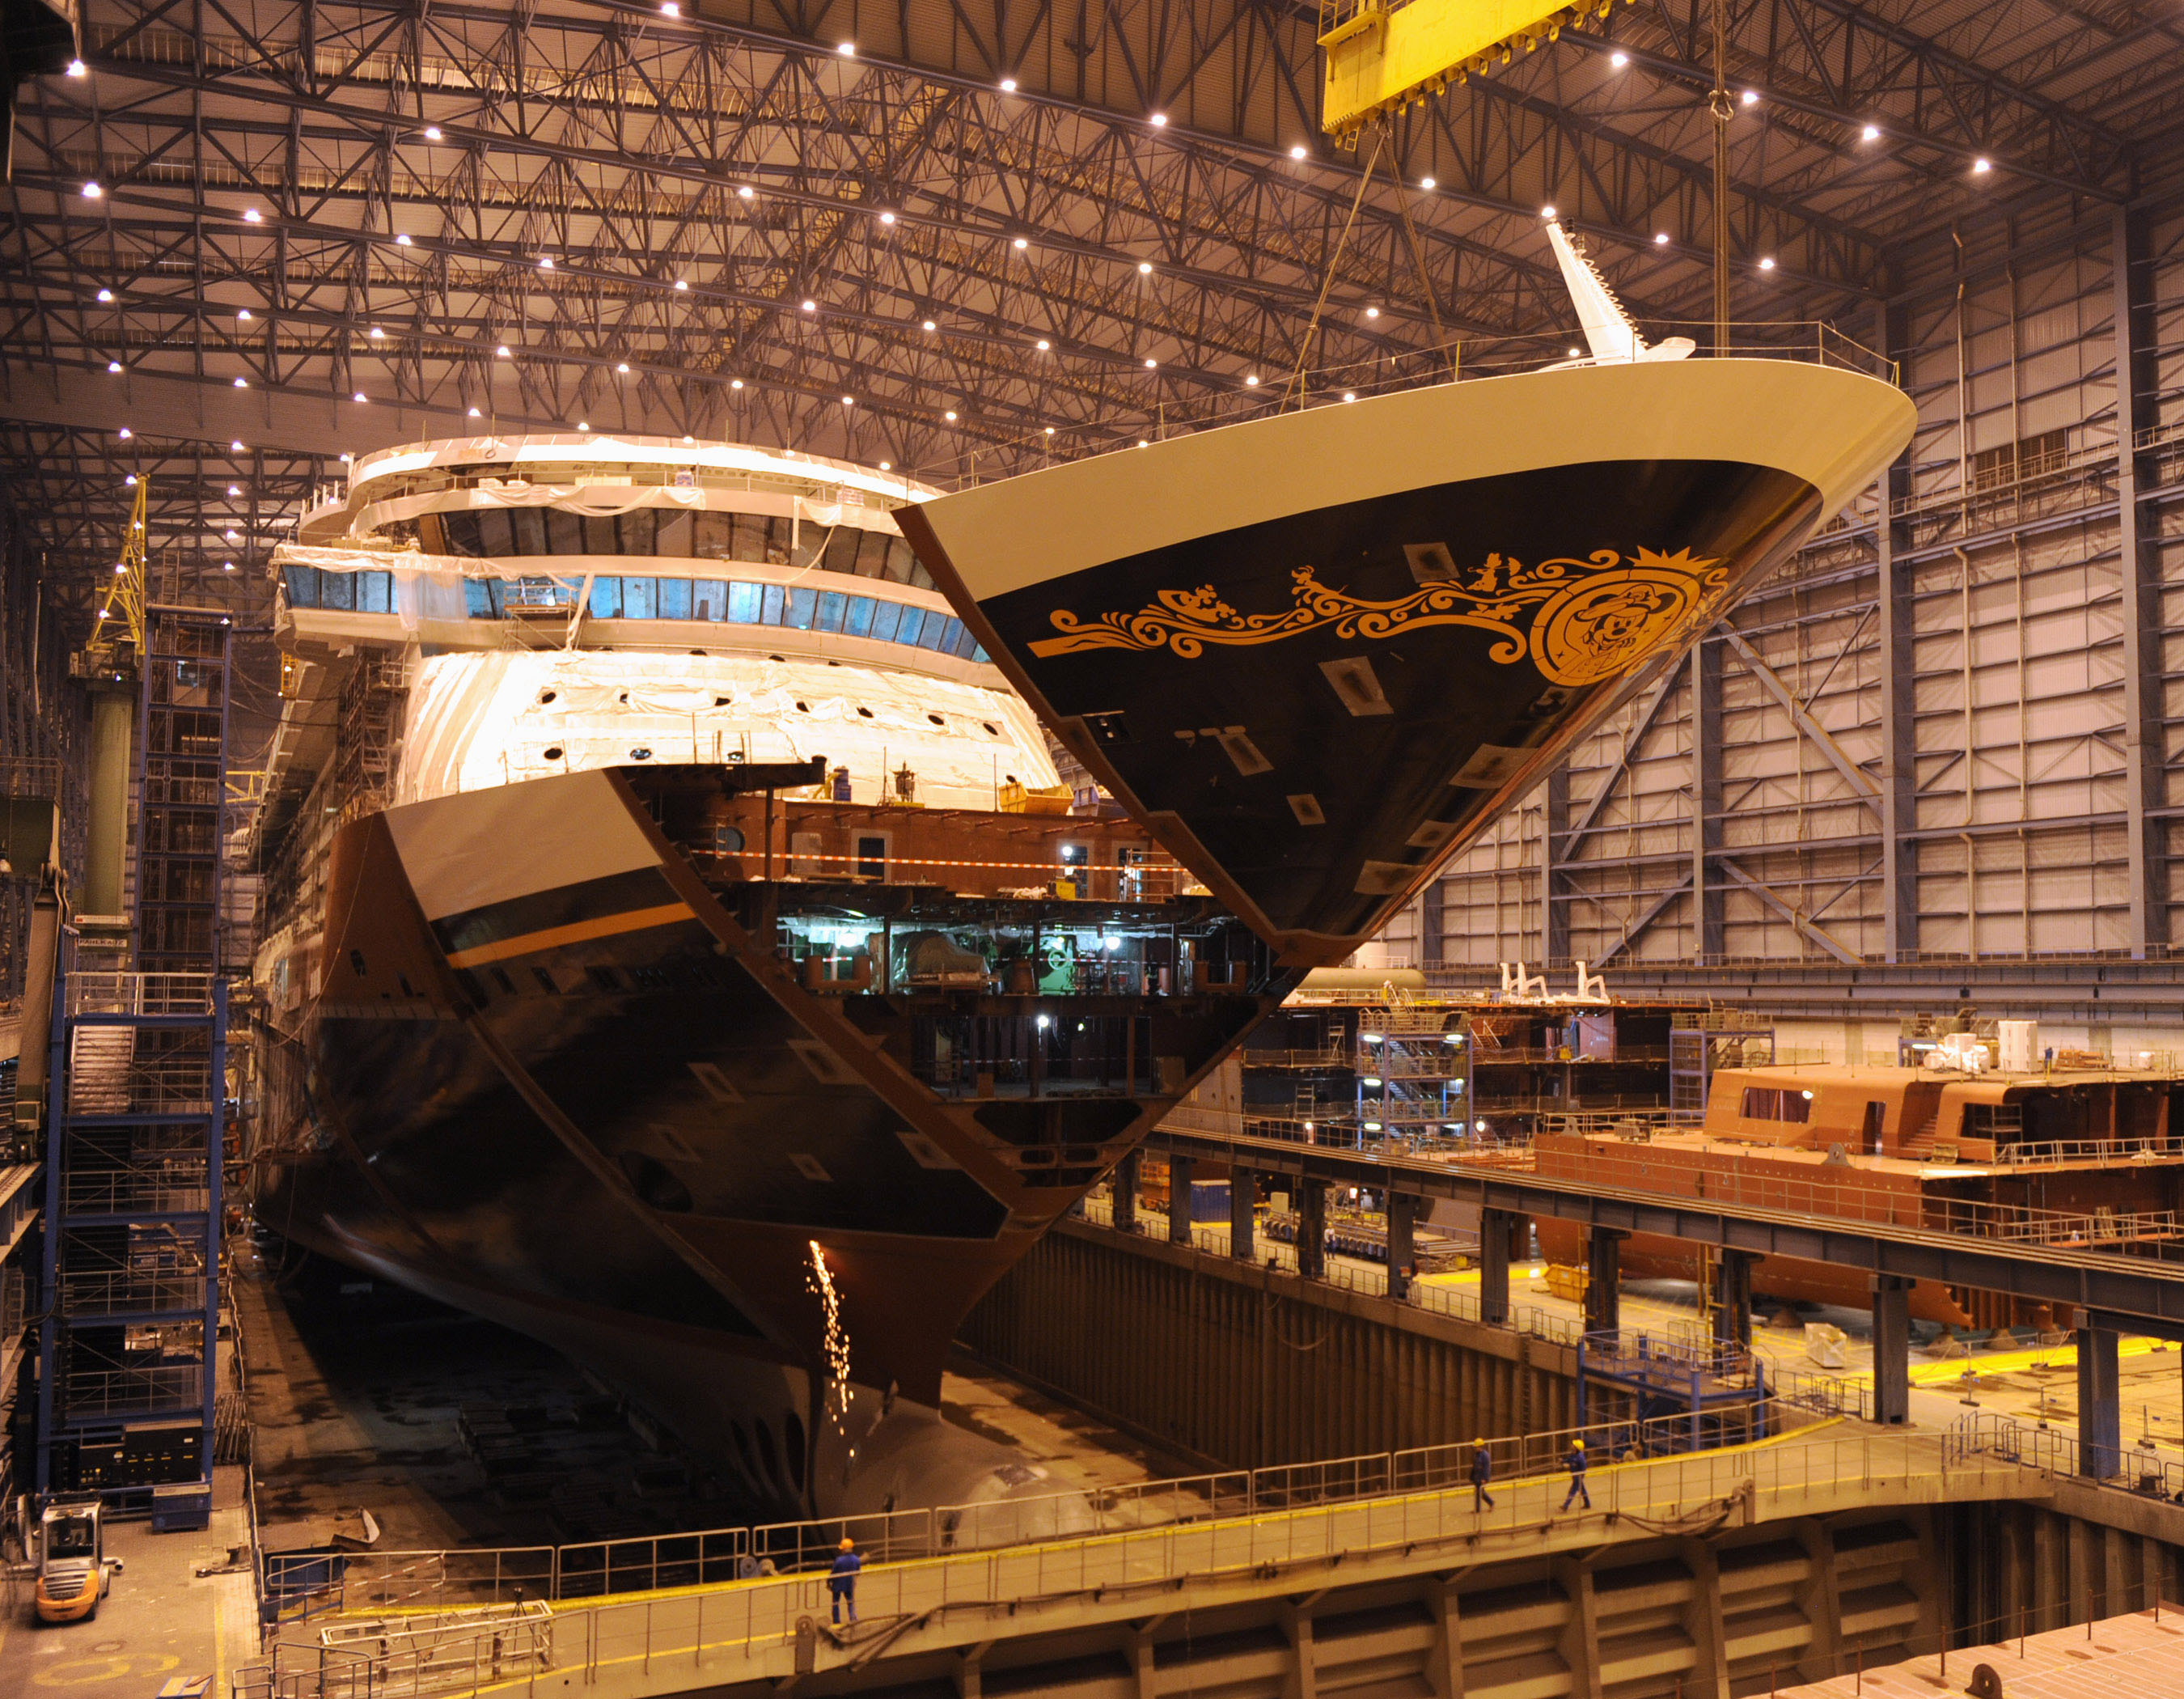 Have You Ever Seen a Disney Cruise Ship Being Assembled ...